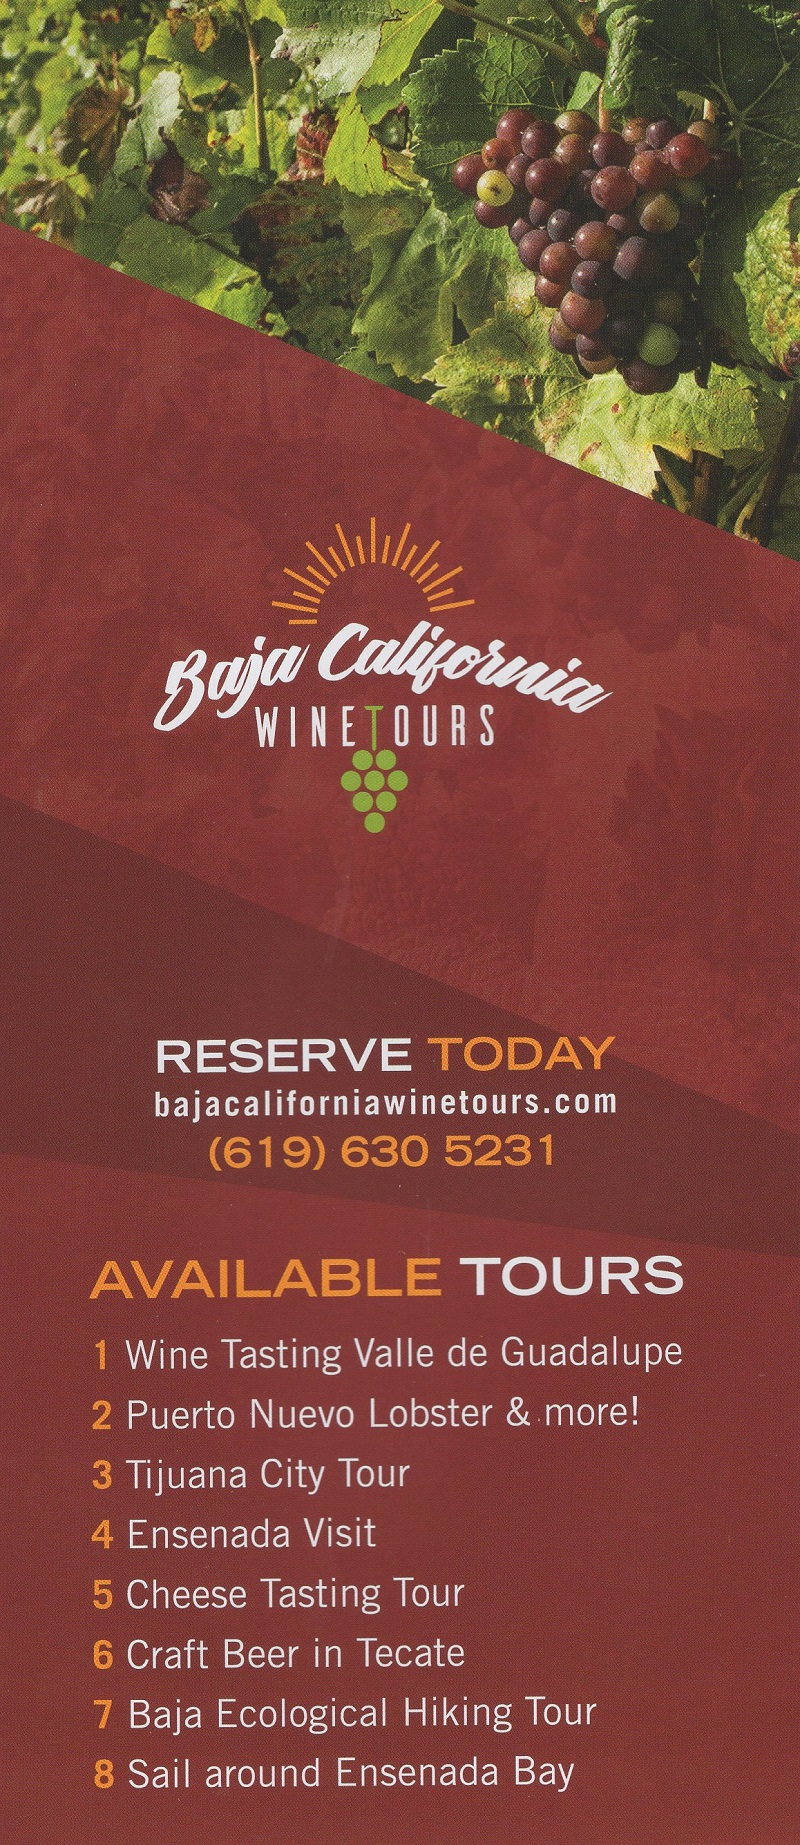 Baja California Wine Tours brochure thumbnail